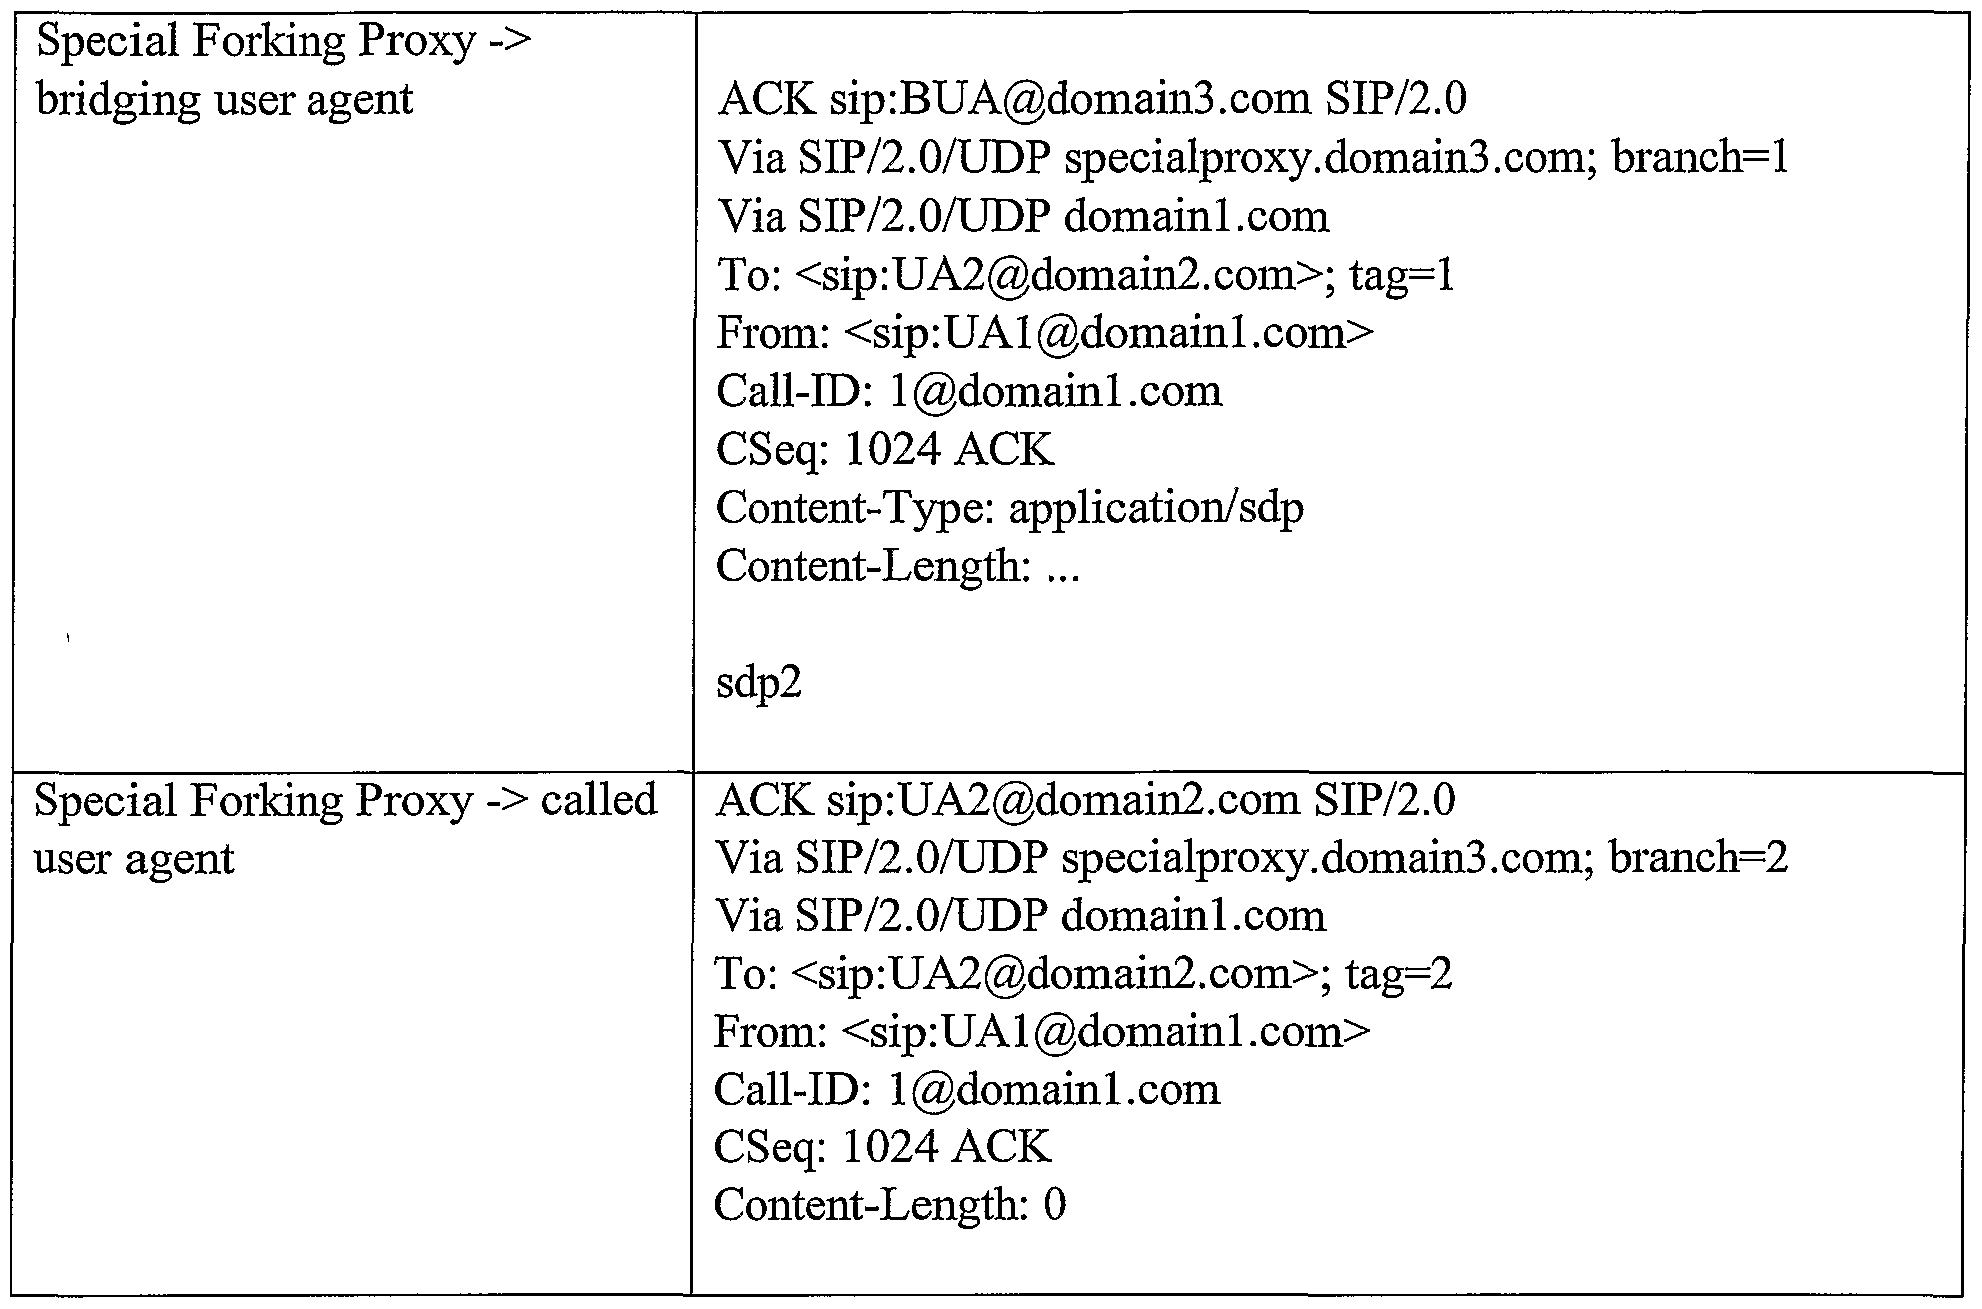 WO2003036506A1 - A bridging user agent and a proxy server